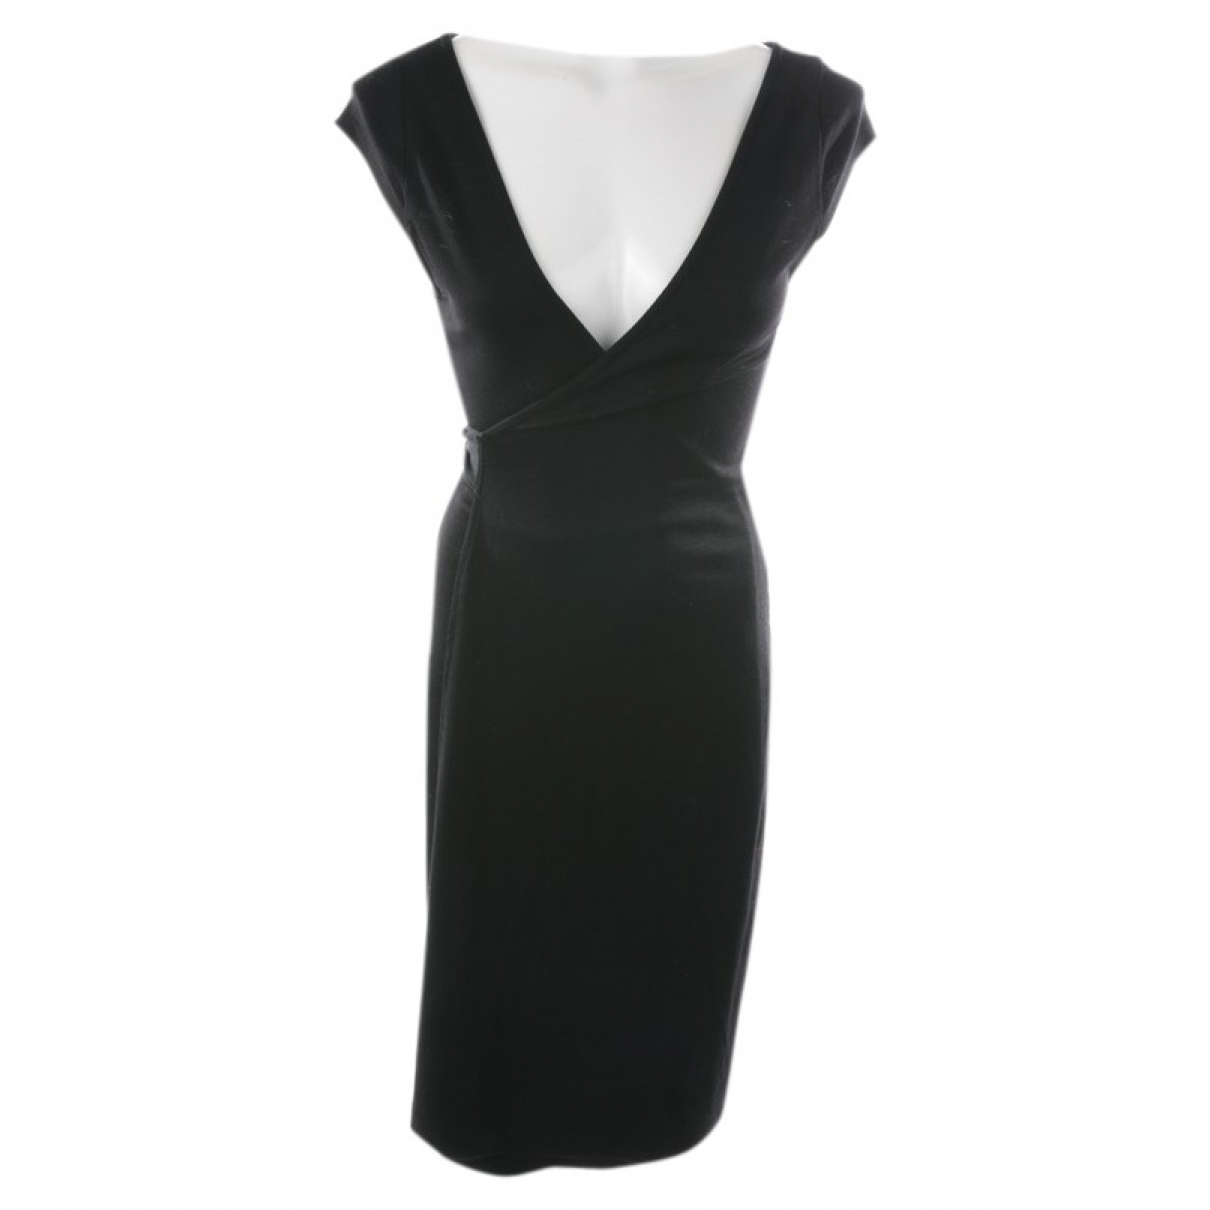 Diane Von Furstenberg N Black Wool dress for Women 38 FR